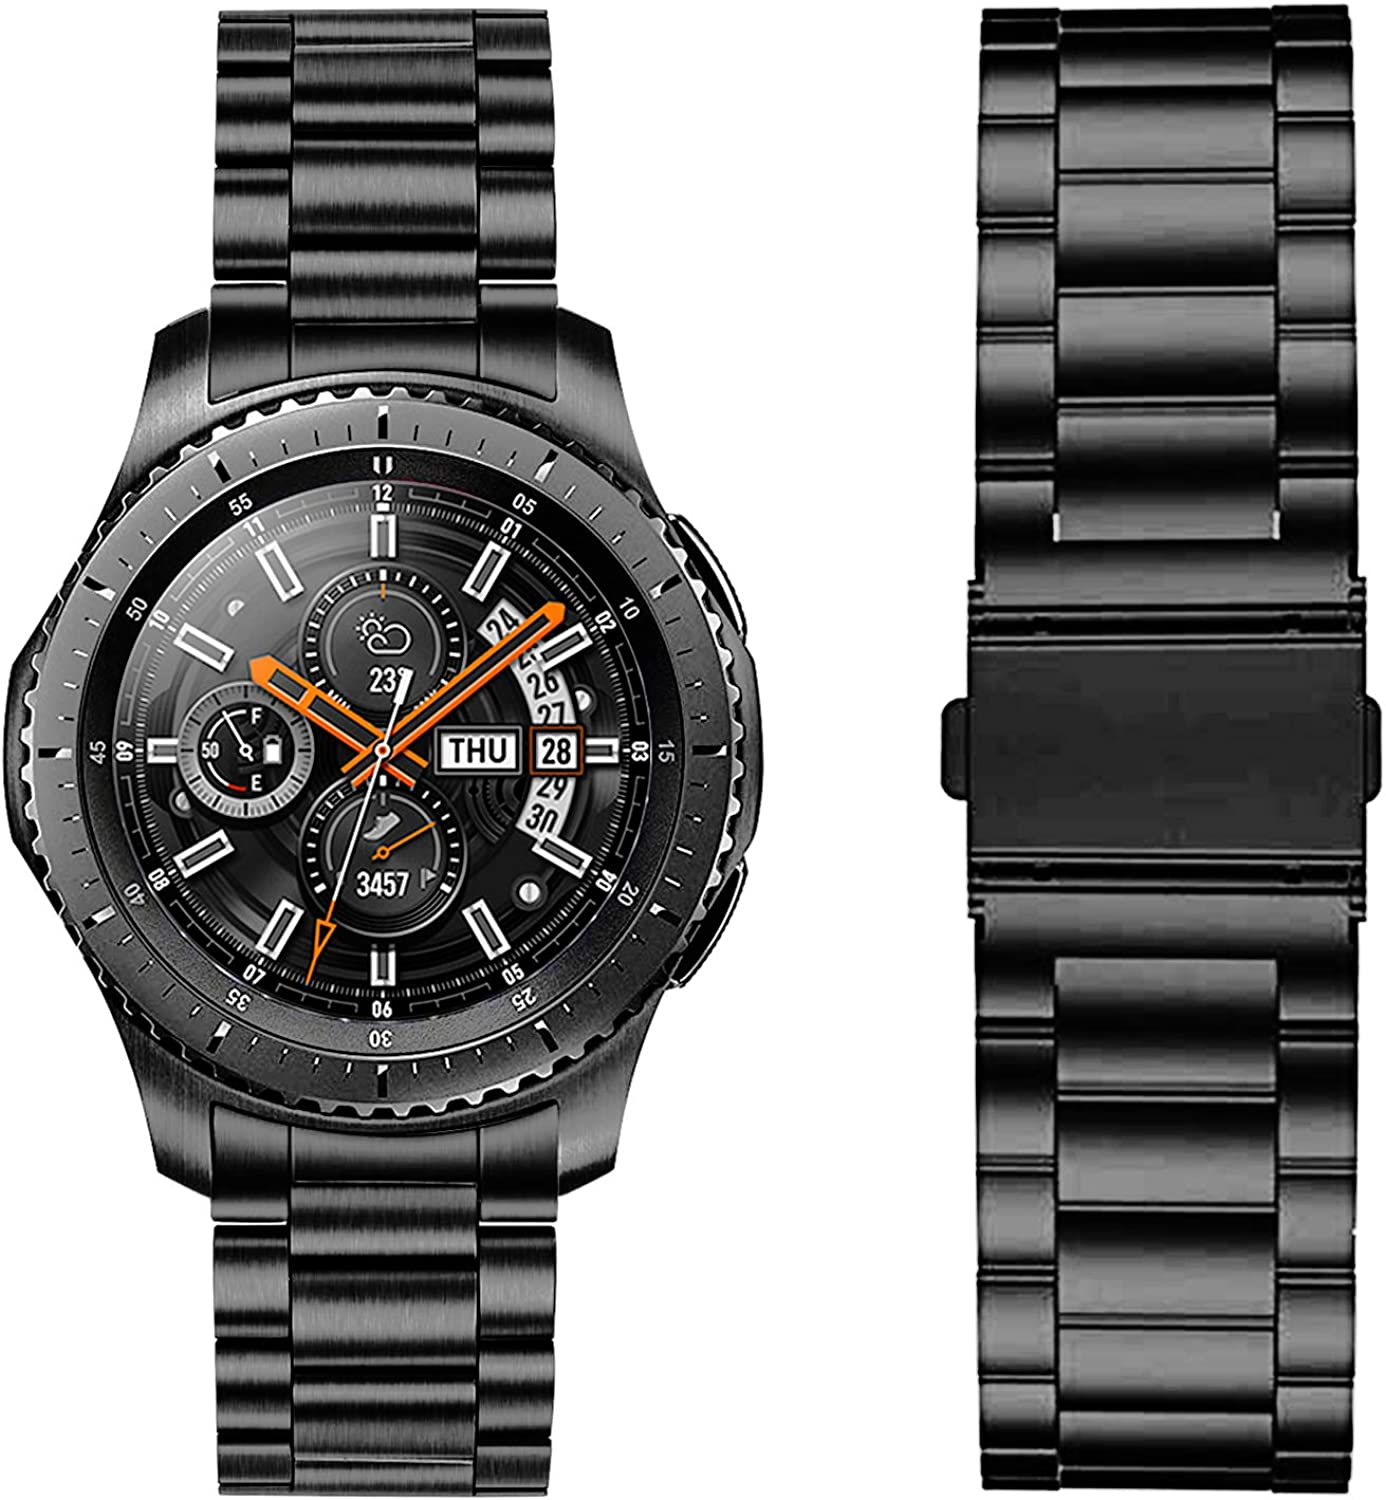 Kartice Metal Bands Compatible with Samsung Galaxy Watch 46mm Bands Gear S3 Band 22mm No Gaps Solid Stainless Steel Metal Watch Bands for Samsung Galaxy Watch 46mm Band